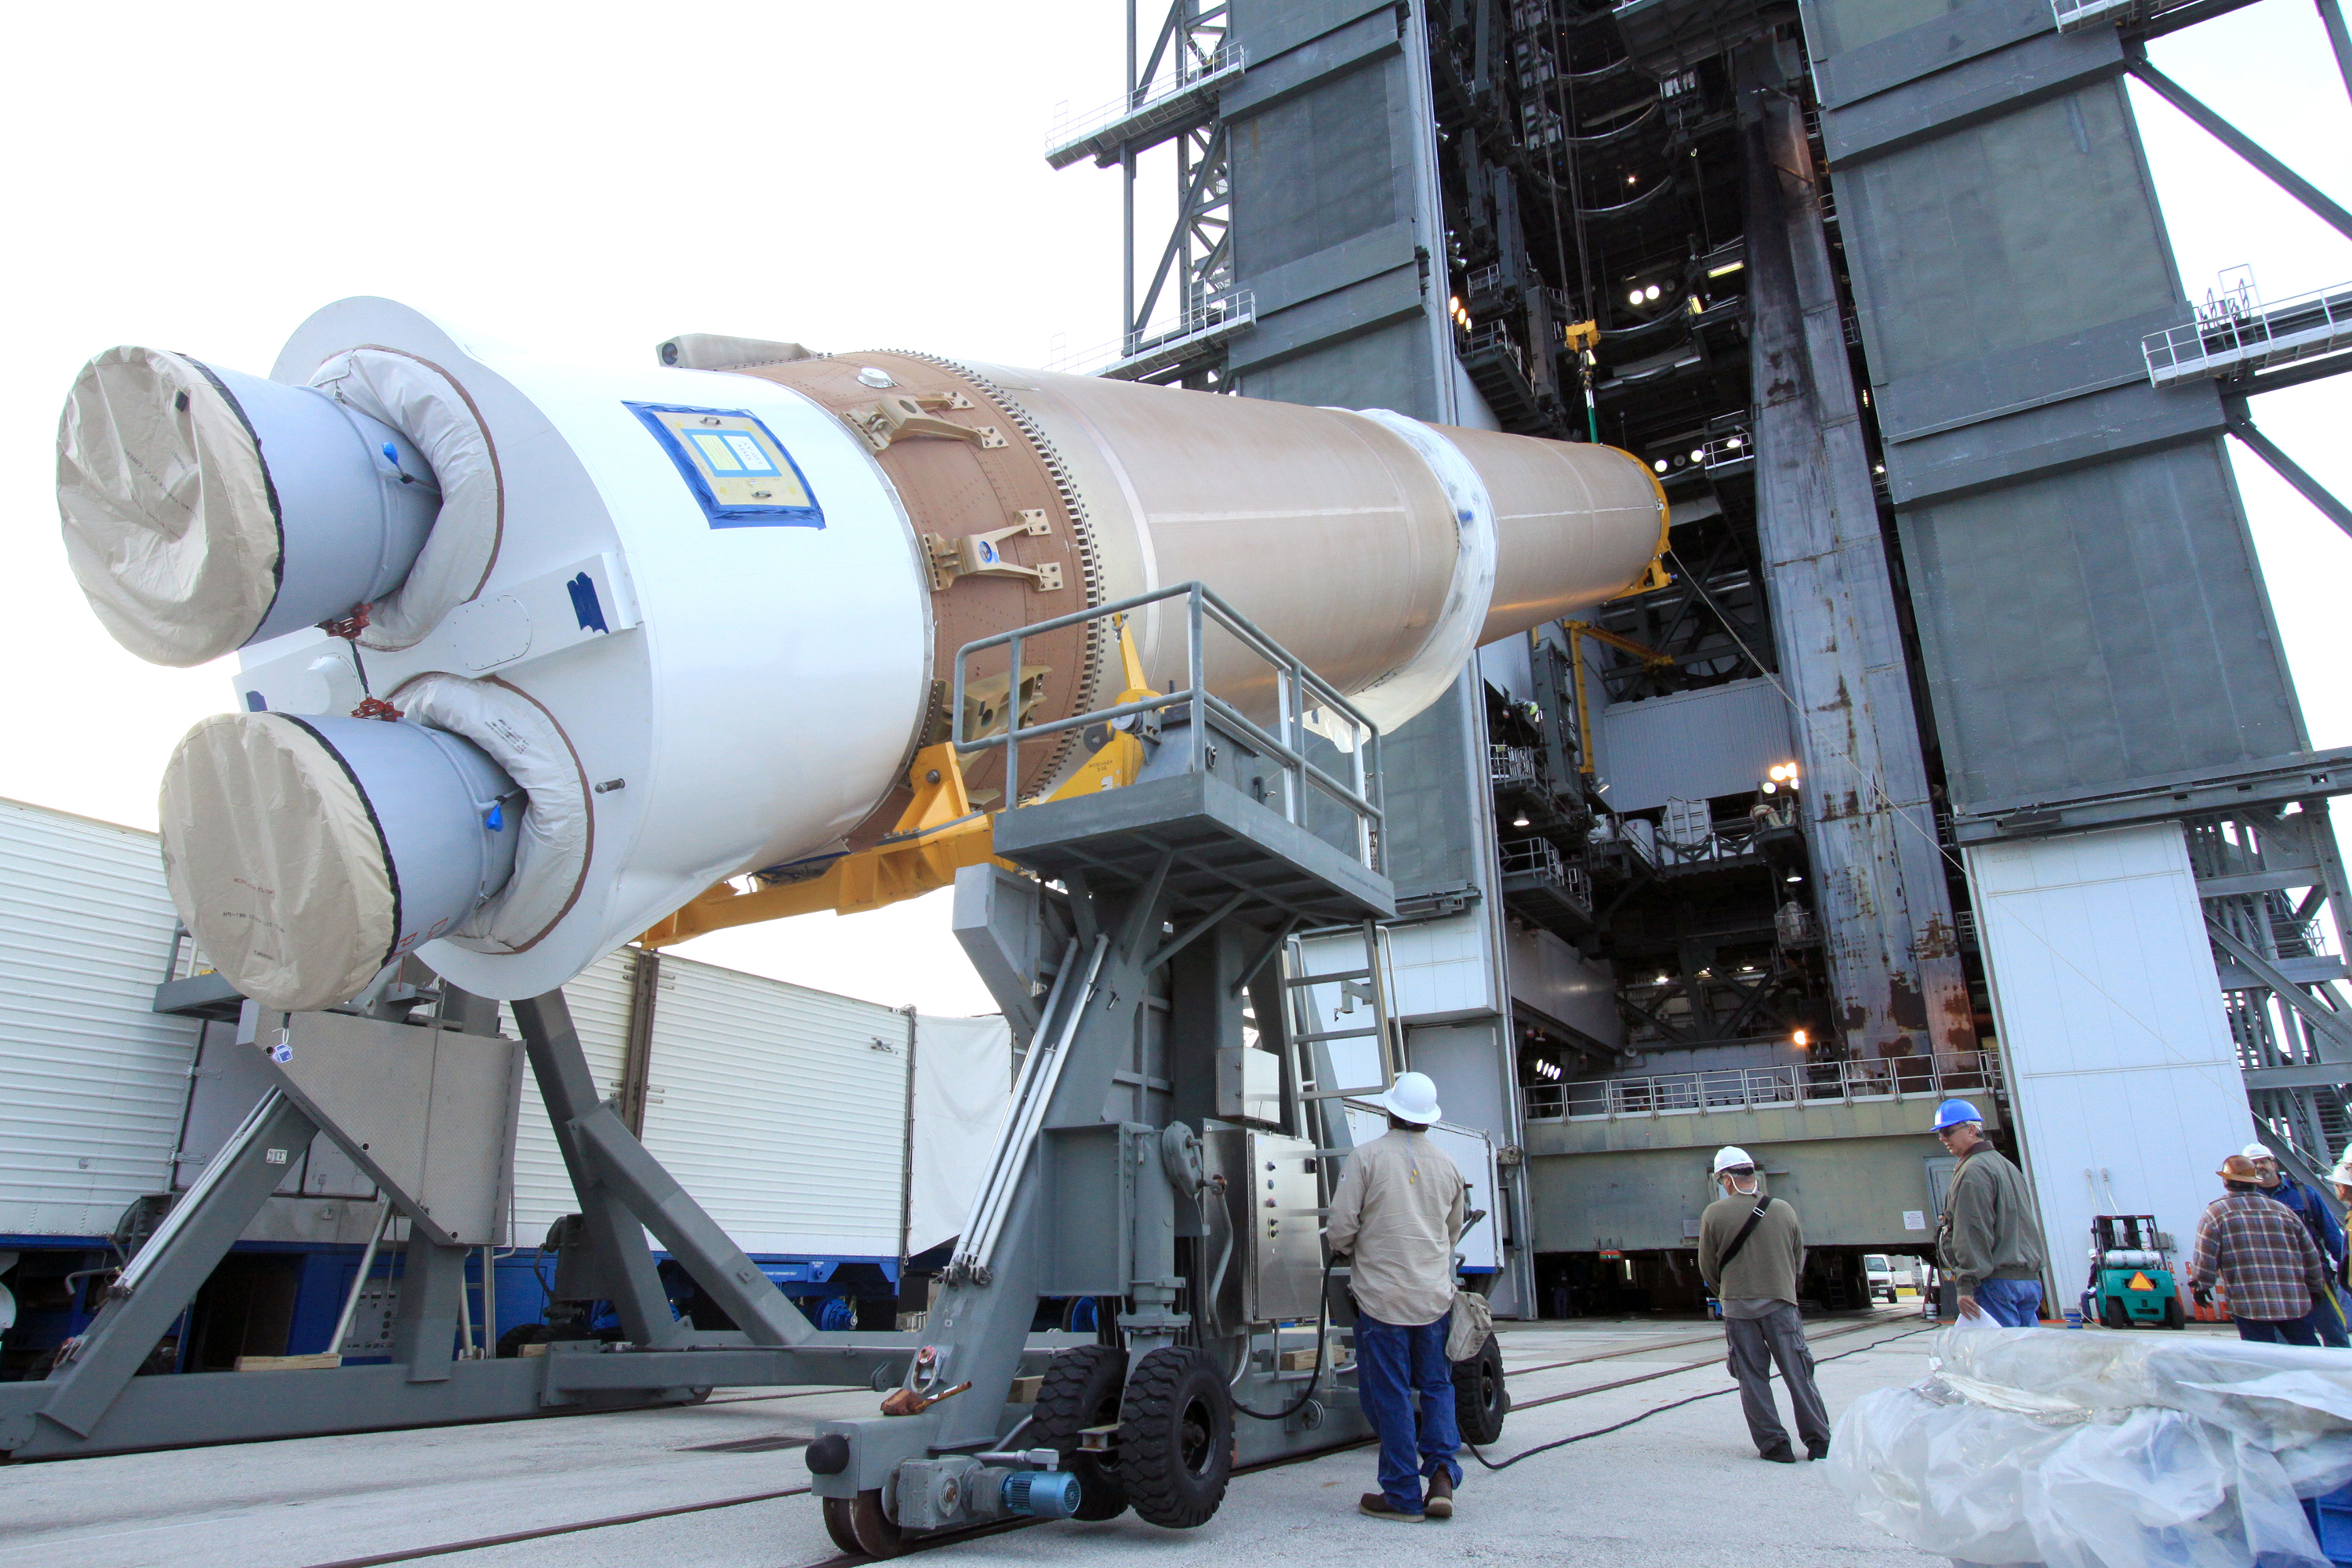 File photo of an Atlas 5 booster stage with a Russian RD-180 main engine. Credit: NASA/Jim Grossmann